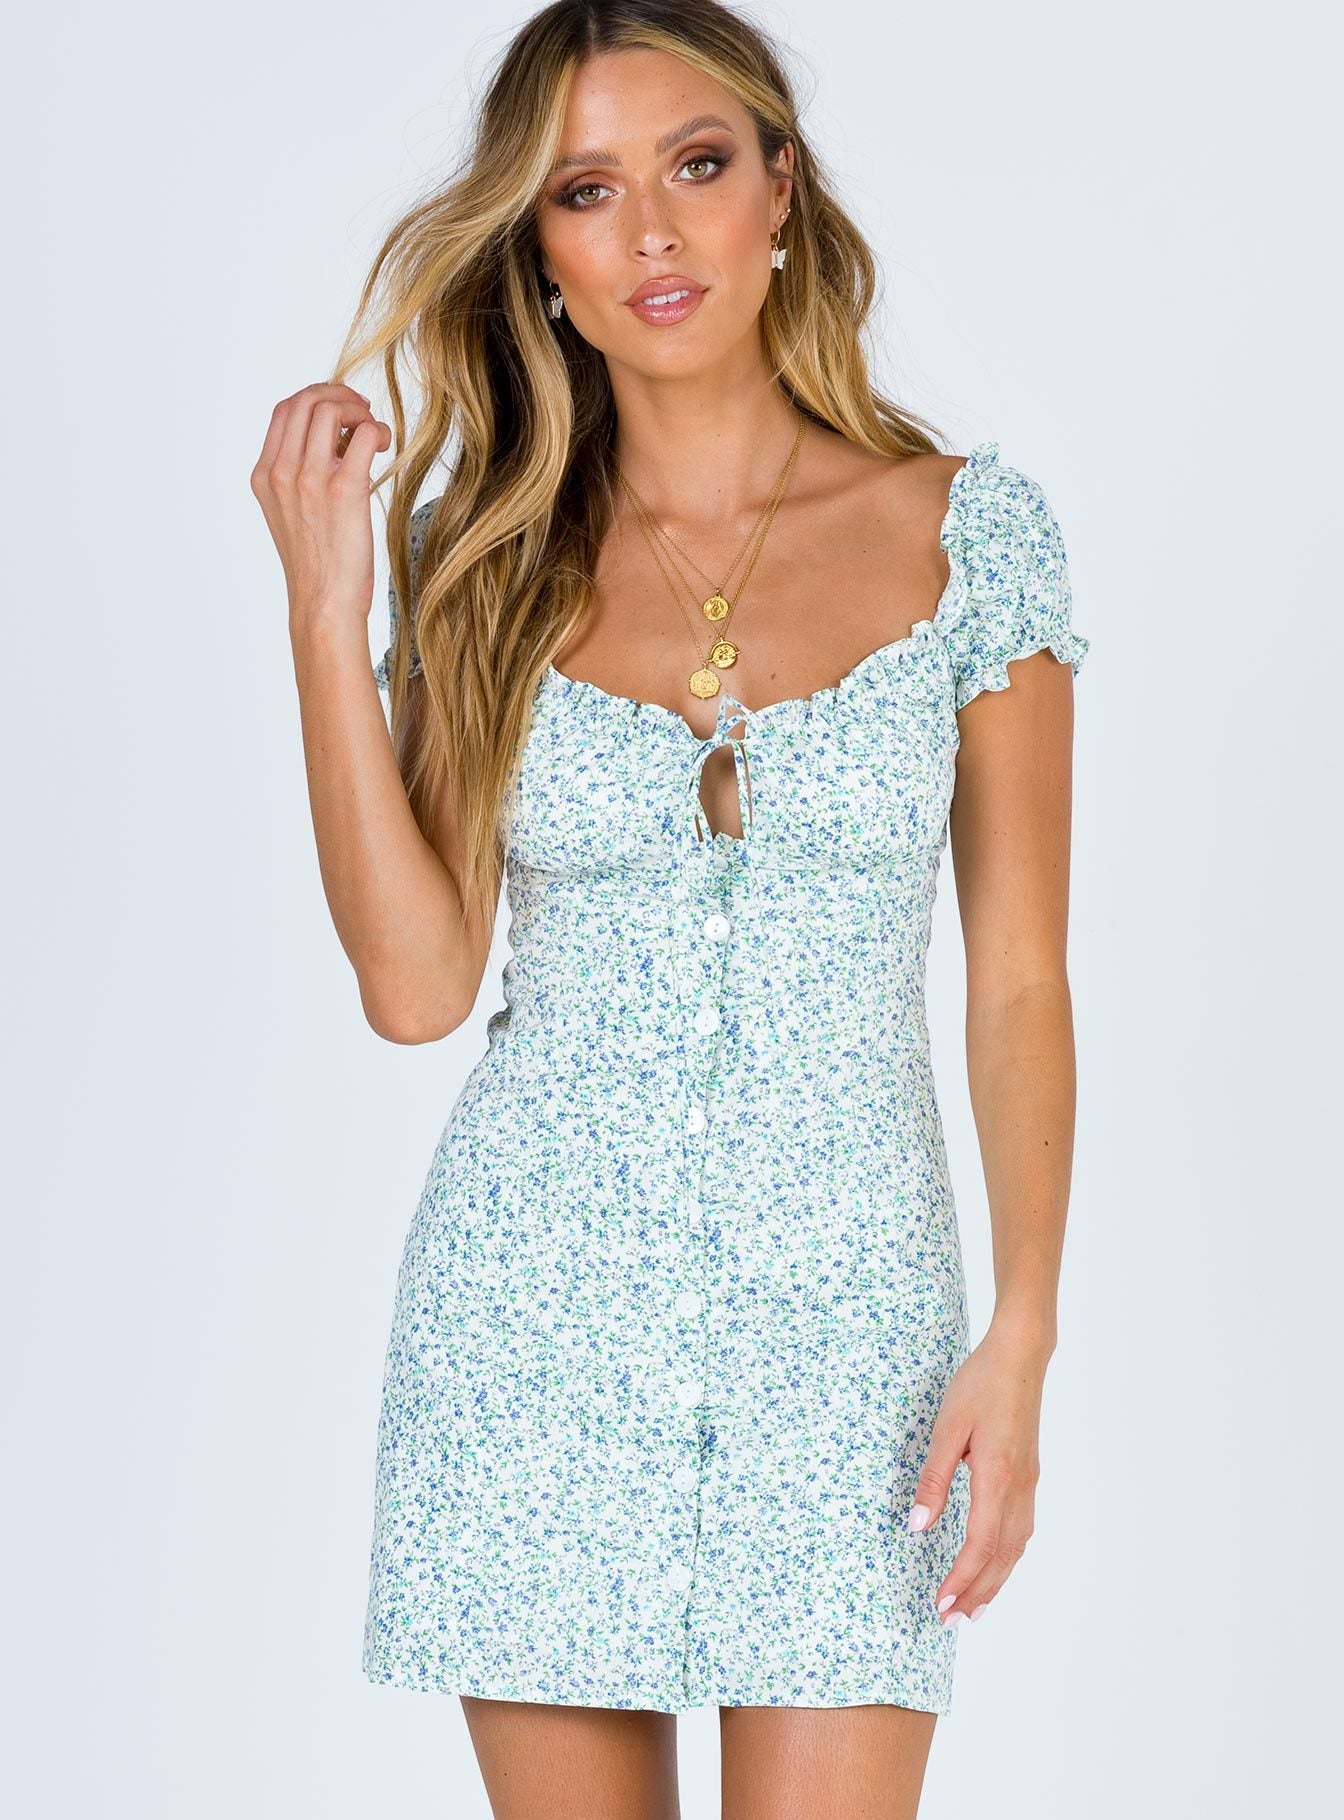 Morning Blues Mini Dress